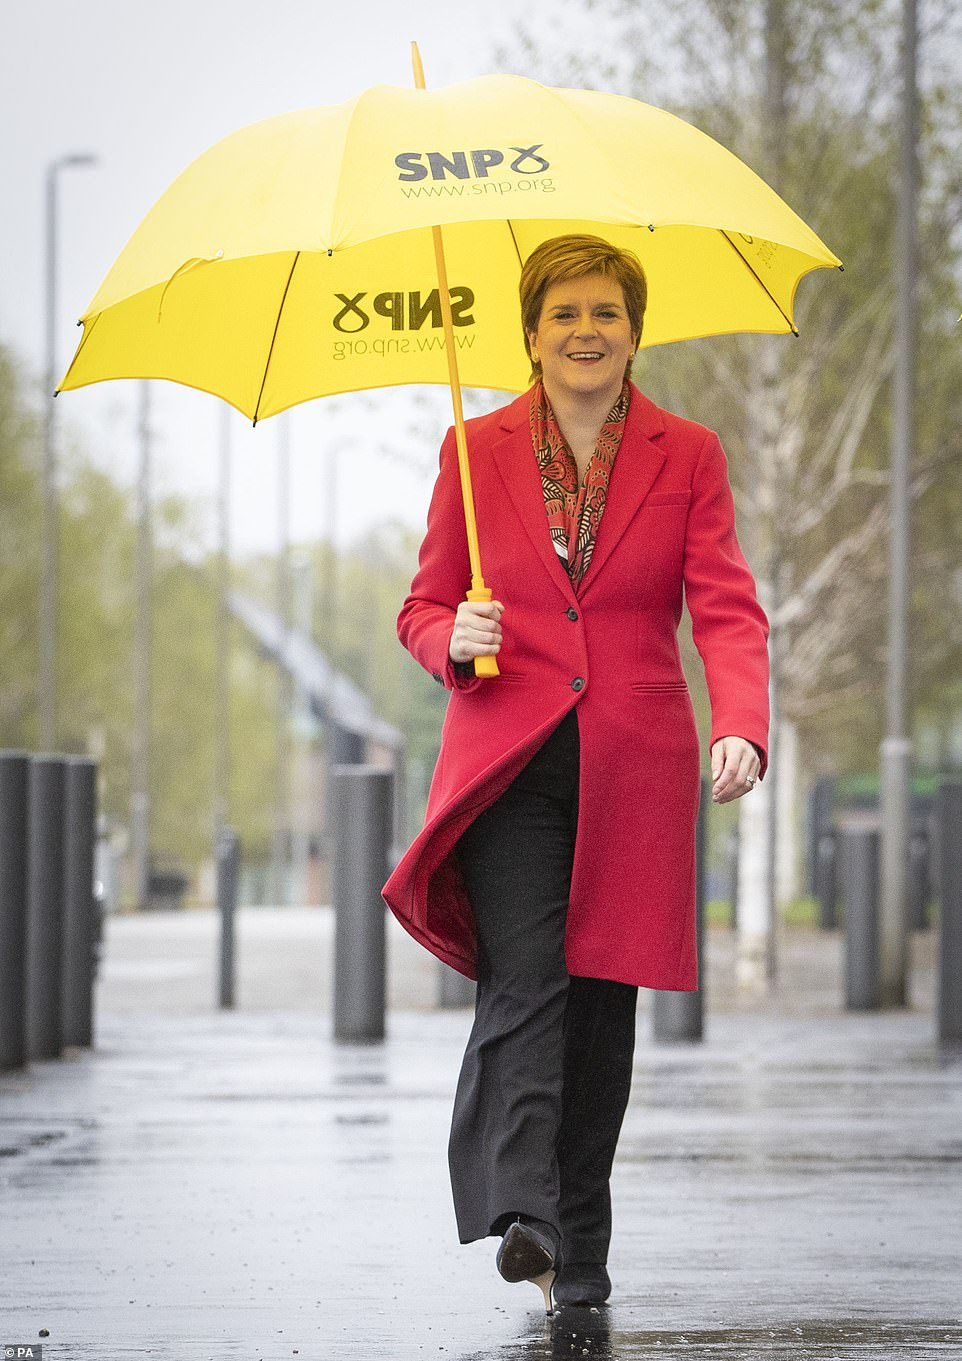 The SNP eventually secured 64 seats. The Conservatives won 31, with 22 to Labour, the Greens on 8 and the Lib Dems on 4. Alex Salmond¿s new Alba party failed to win a seat